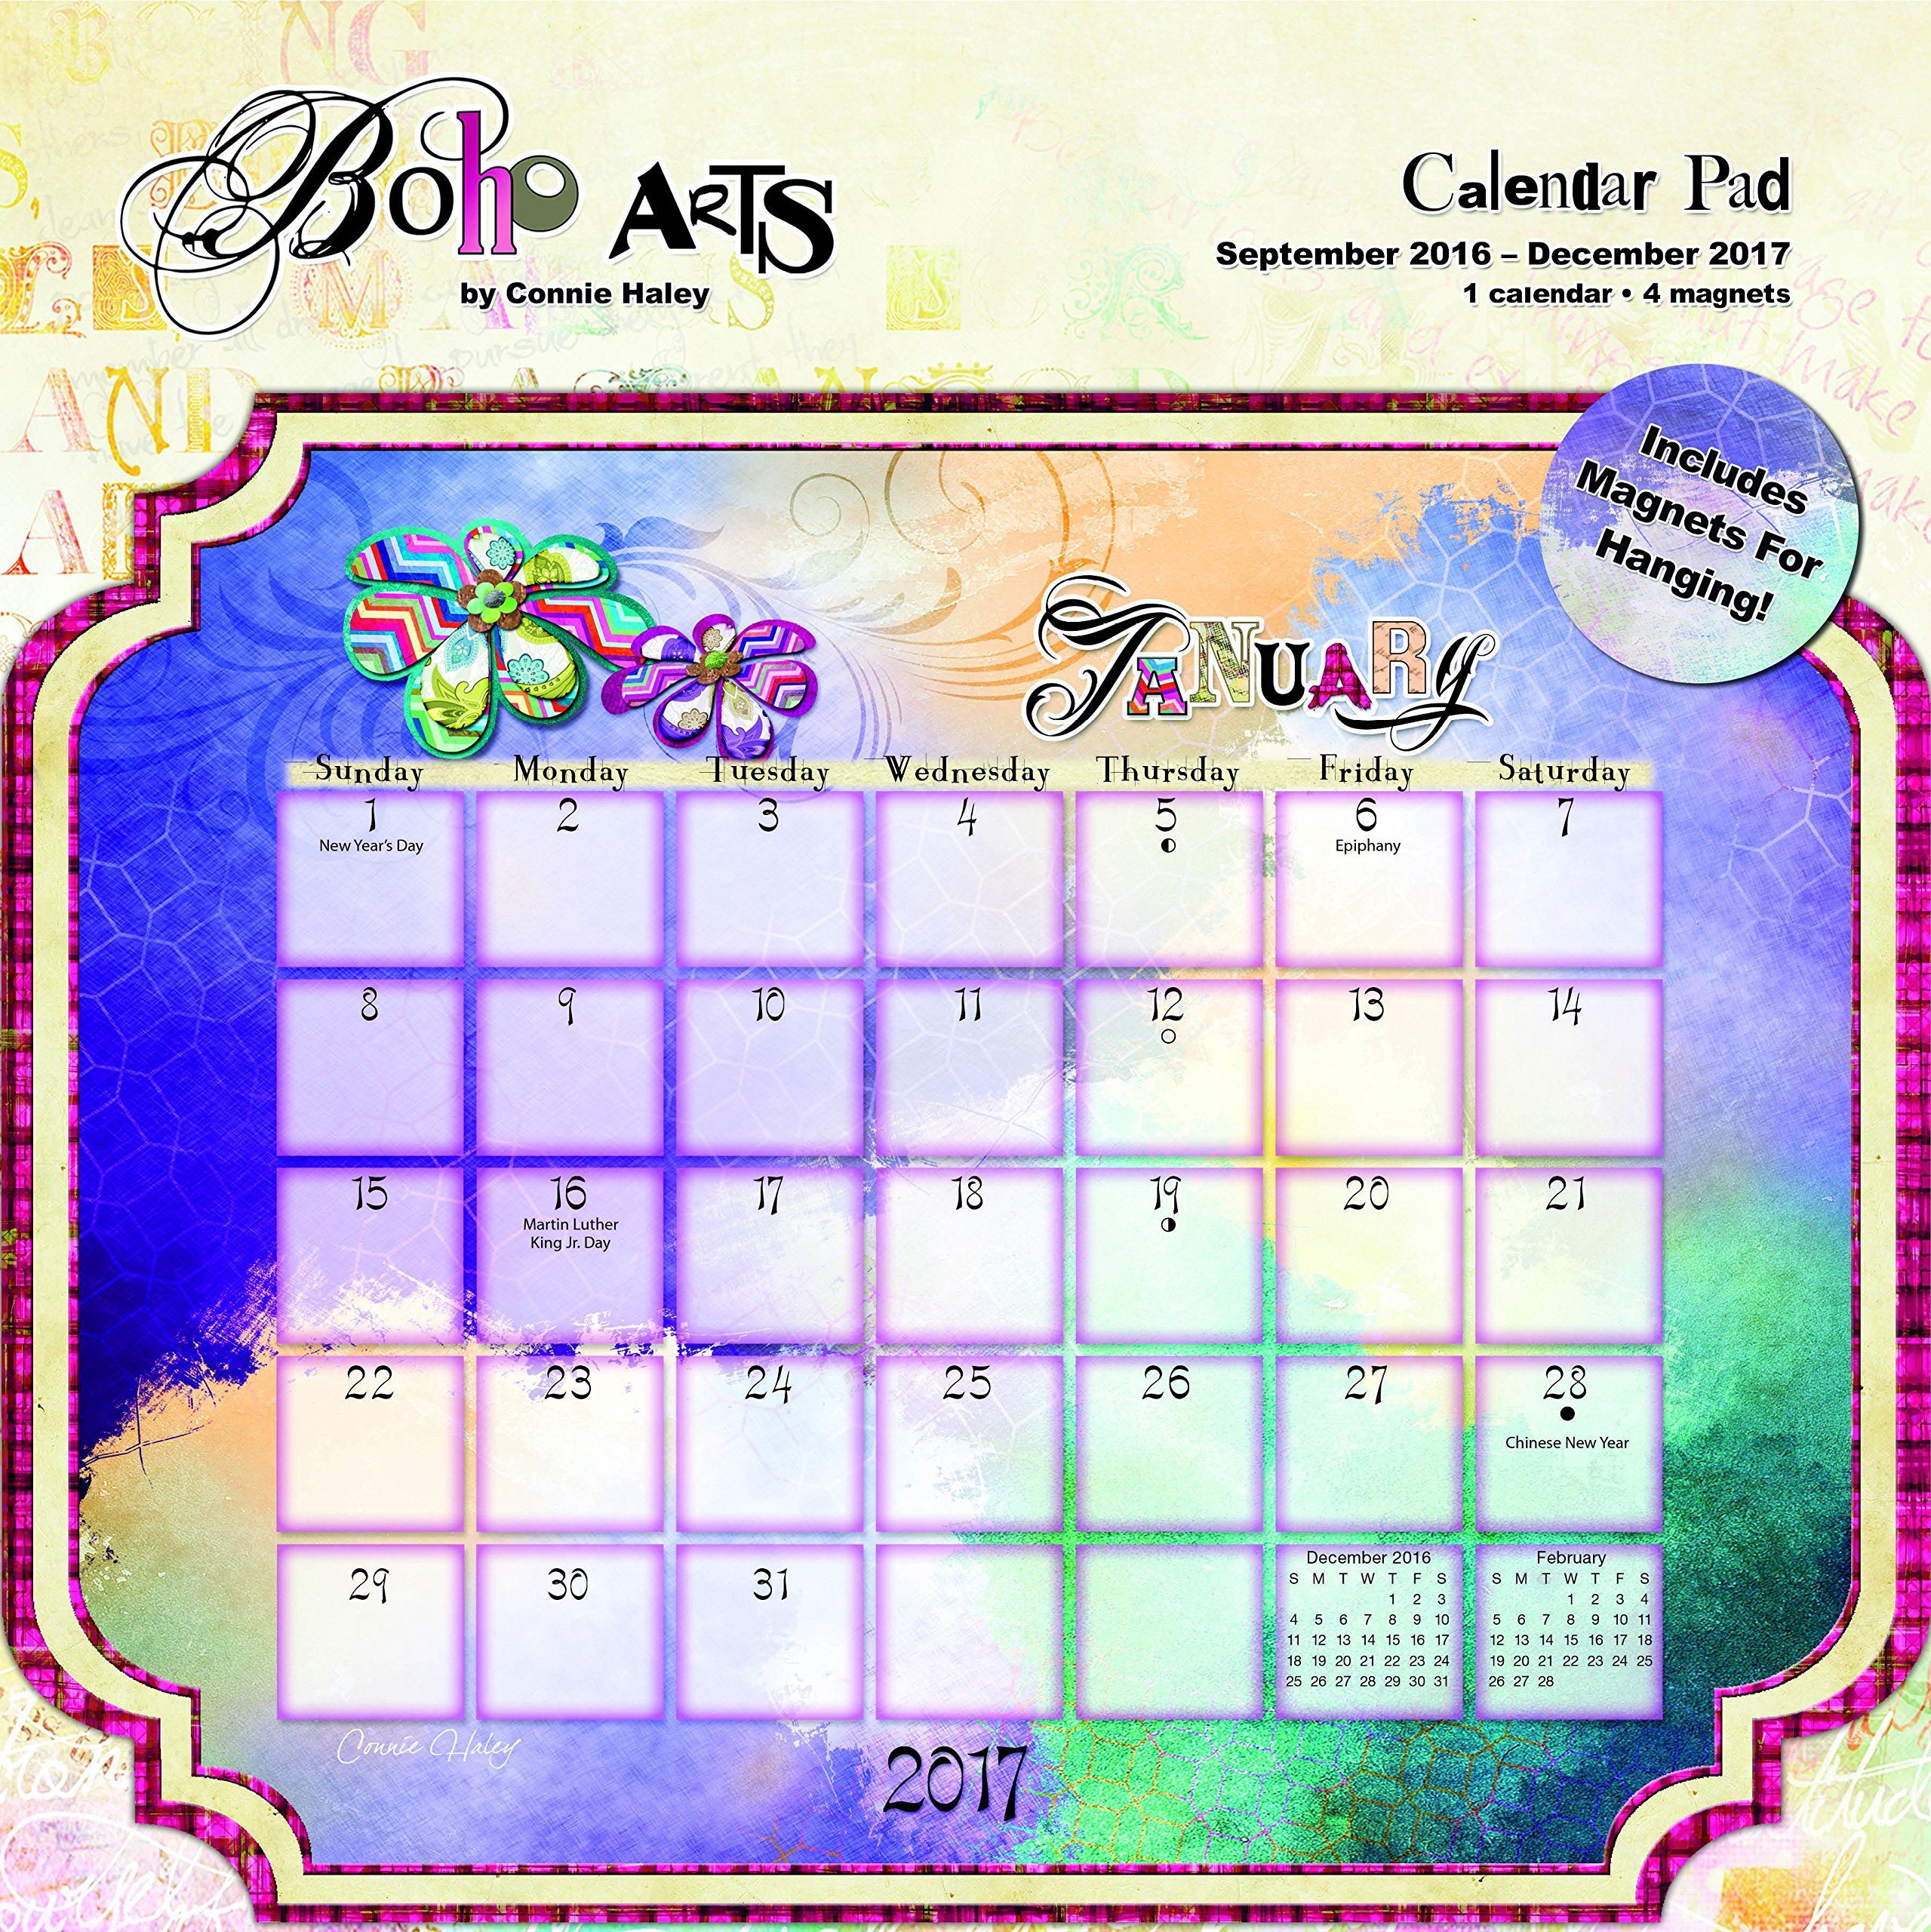 "Trends International 2017 Die-Cut Calendar Pad, September 2016 - December 2017, 12"" x 12"", Boho Arts By Connie Haley pdf epub"